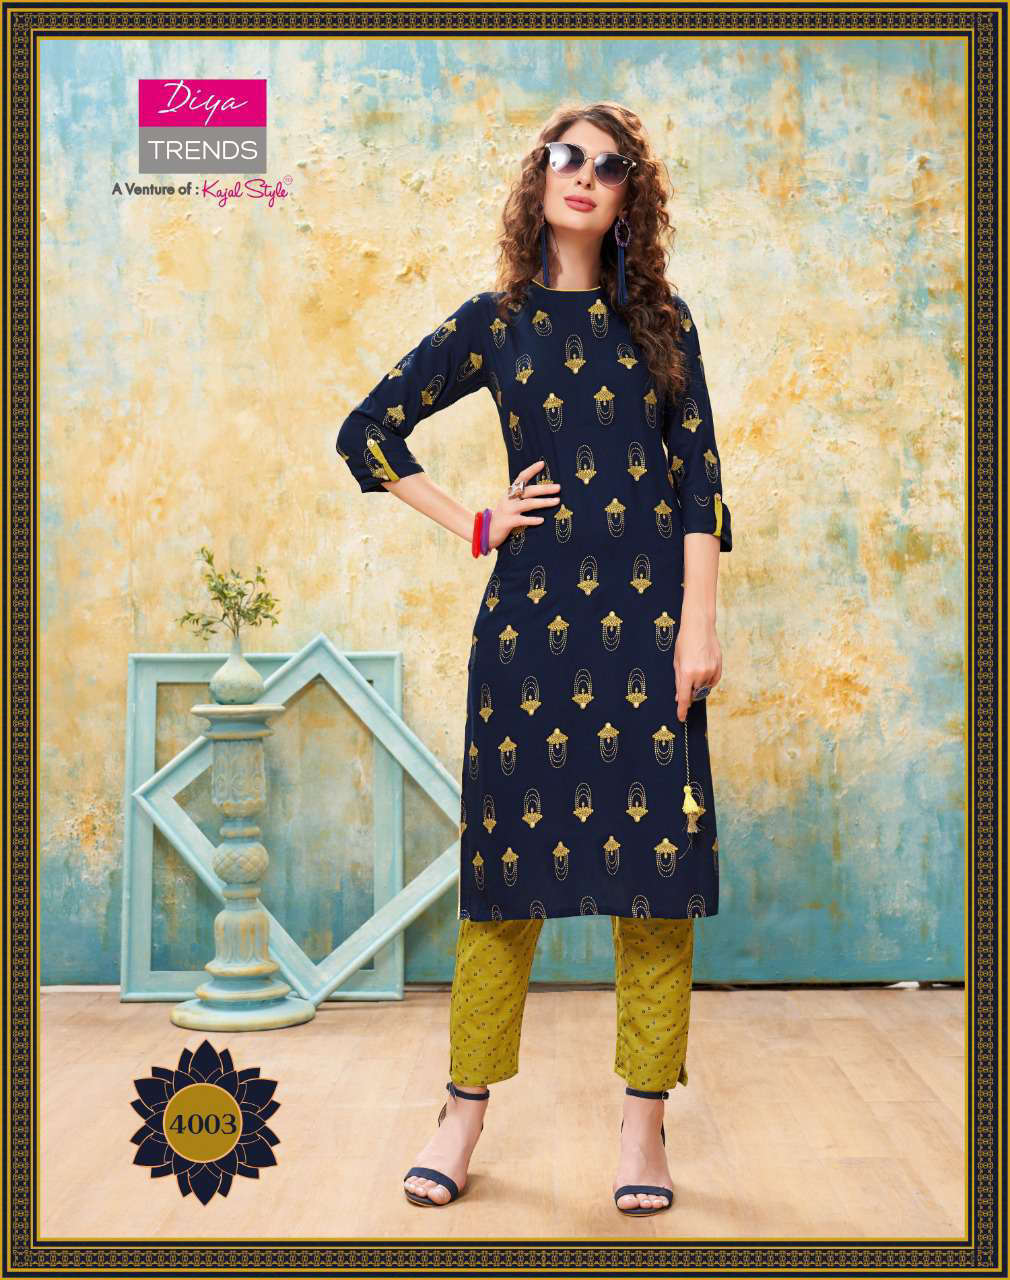 Diya Trends Forever Vol 4 by Kajal Style Kurti with Pant Wholesale Catalog 12 Pcs 4 - Diya Trends Forever Vol 4 by Kajal Style Kurti with Pant Wholesale Catalog 12 Pcs